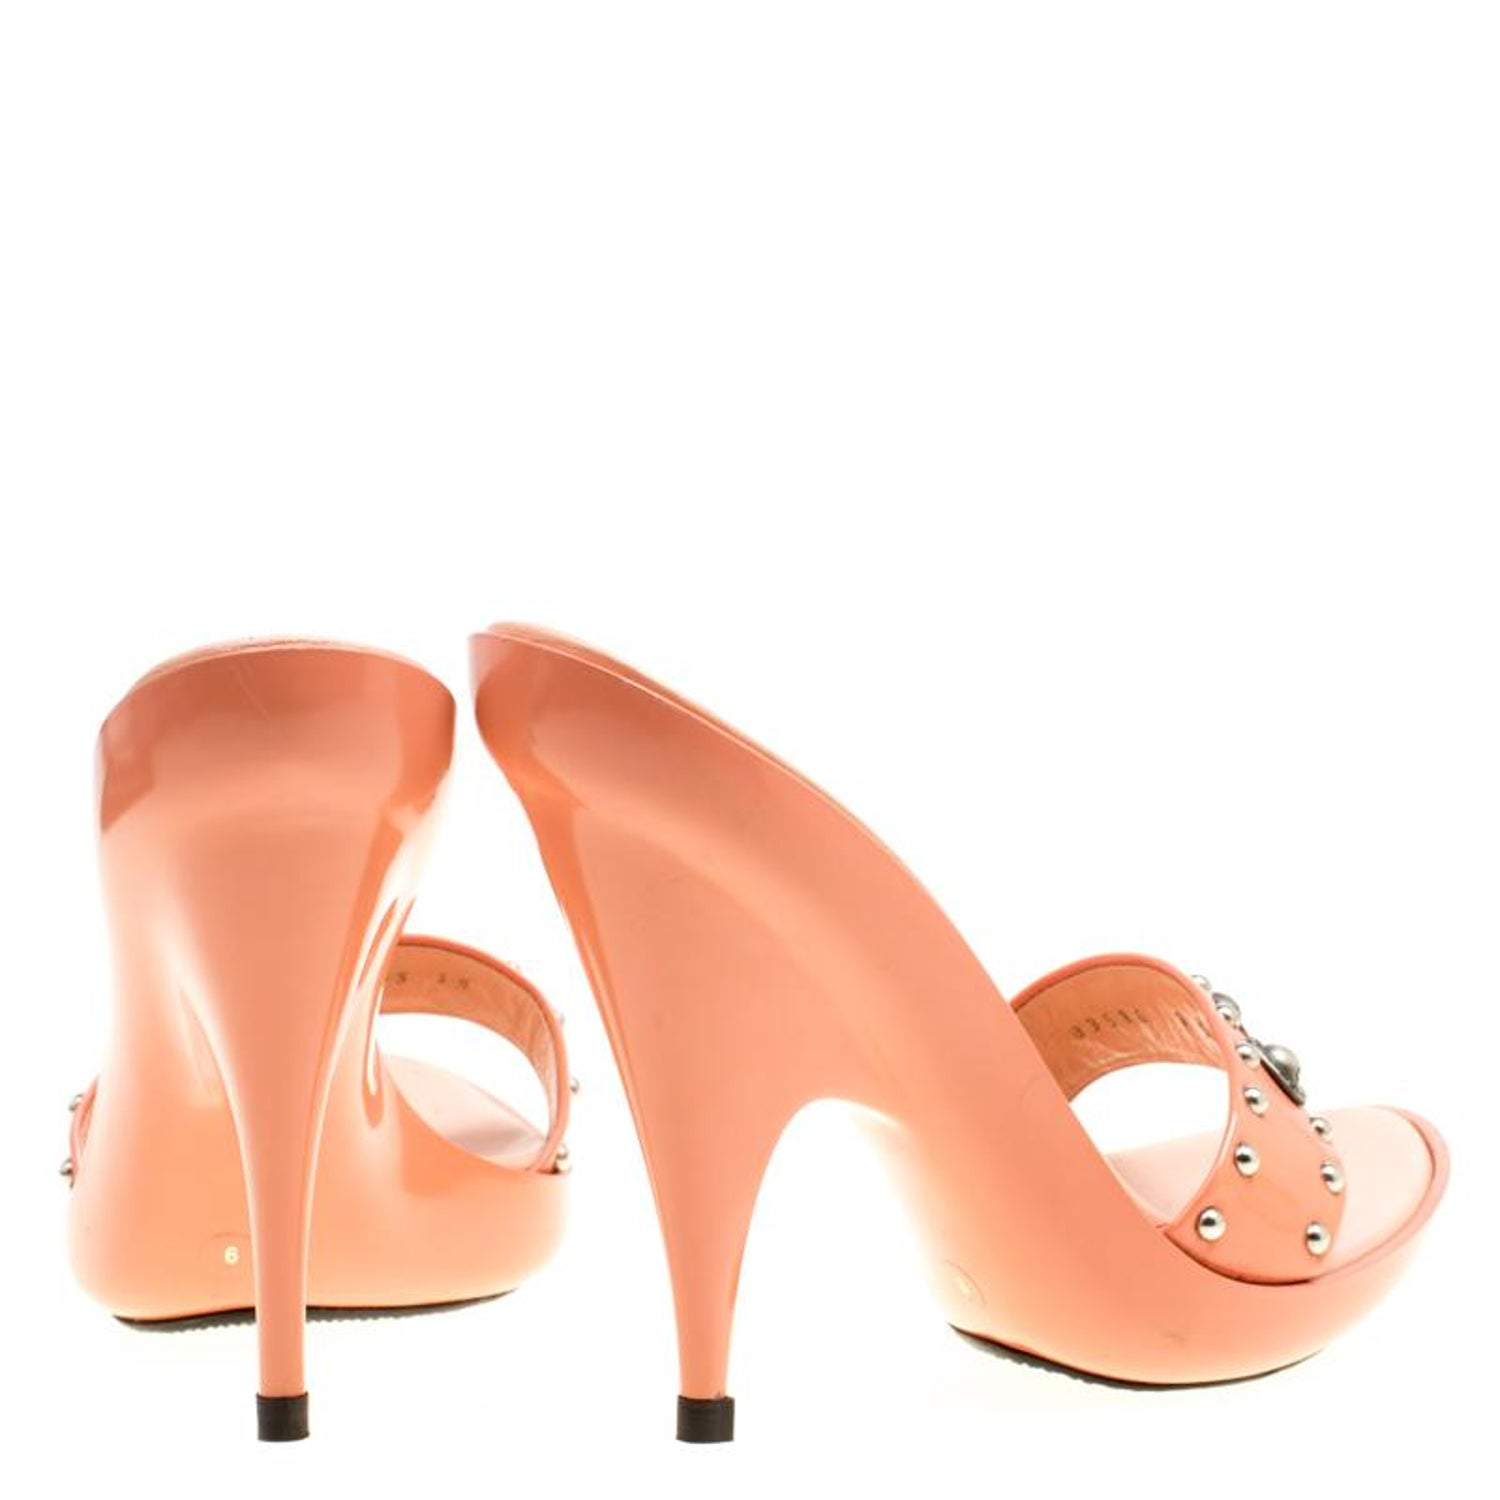 24ea407c87 Casadei Peach Patent Leather Studded Mules Size 39 For Sale at 1stdibs